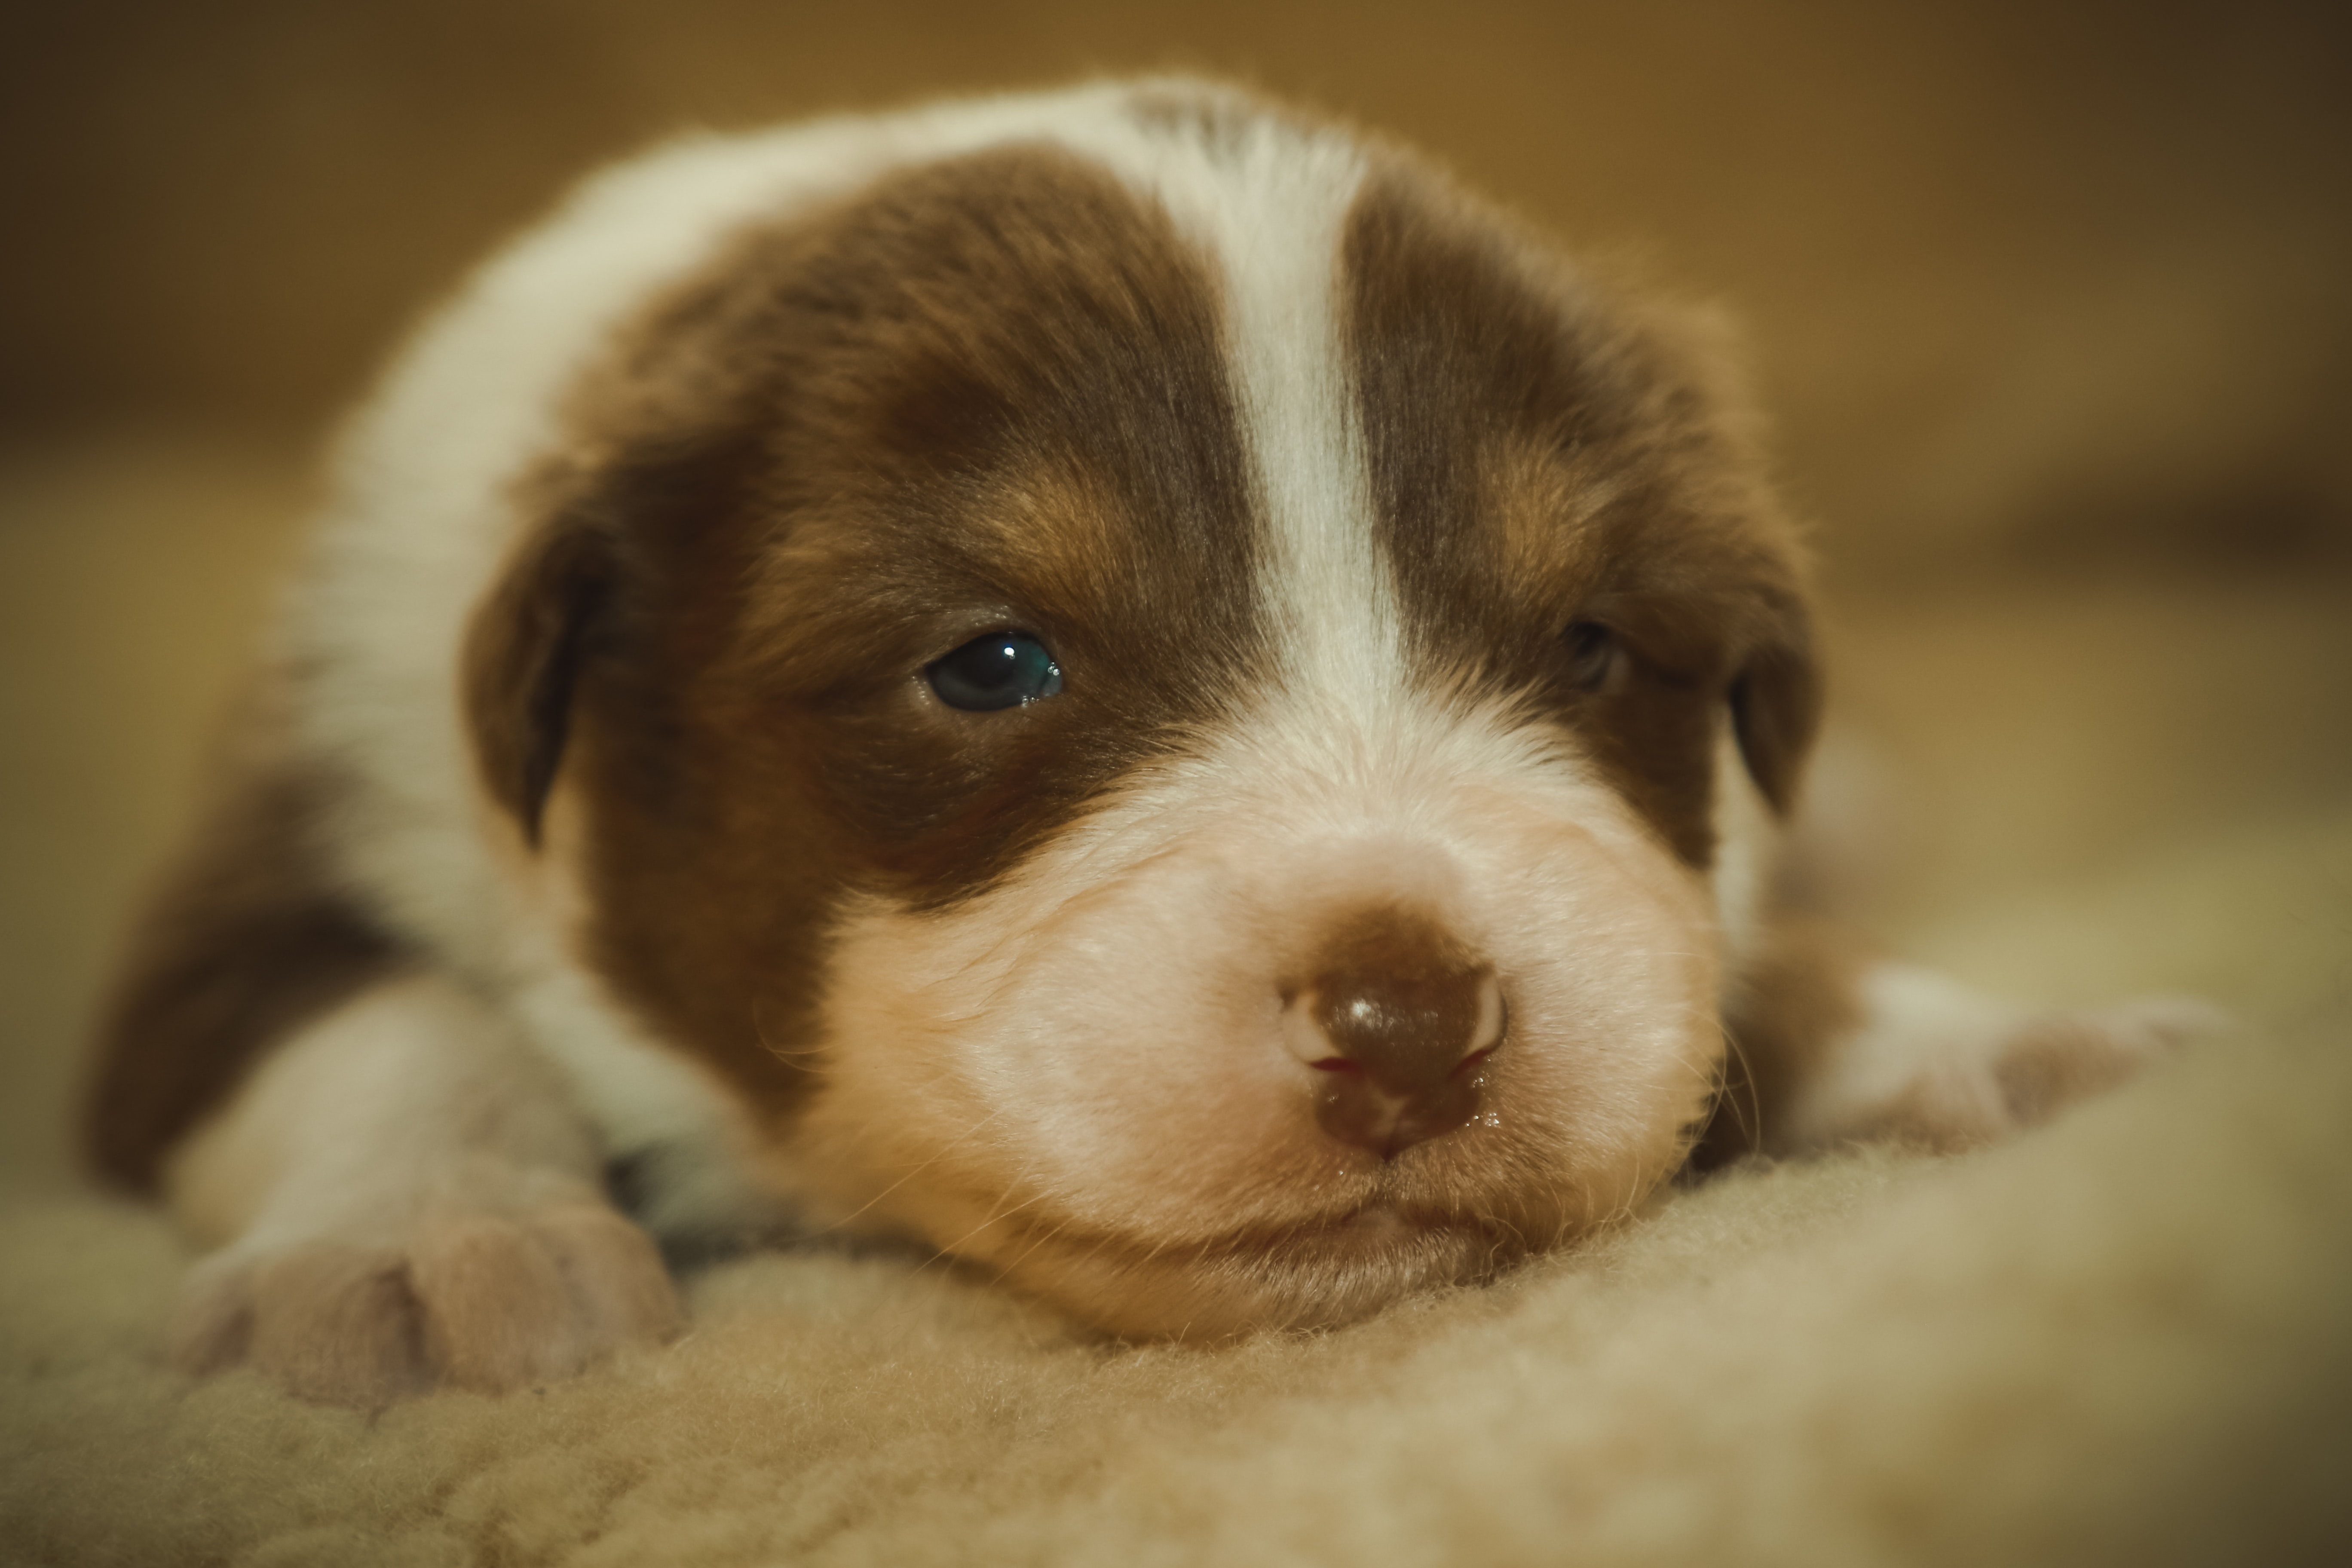 tilt shift lens photography of short-coated white and brown puppy